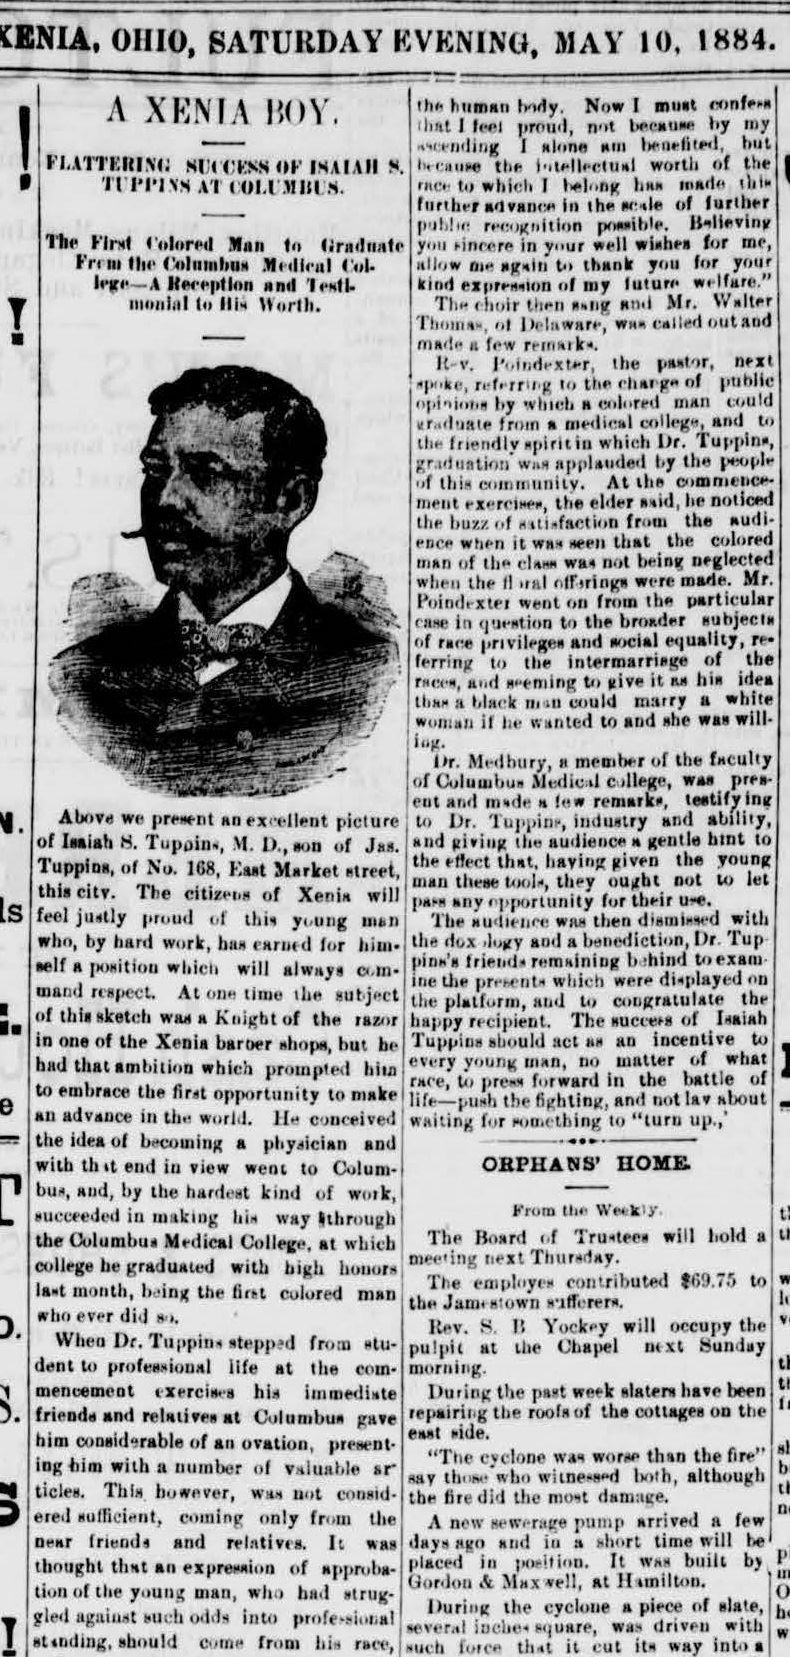 Fig 4. Article from Xenia Daily Gazette, dated May 10, 1884, of Dr. Tuppins' graduation (JPG)